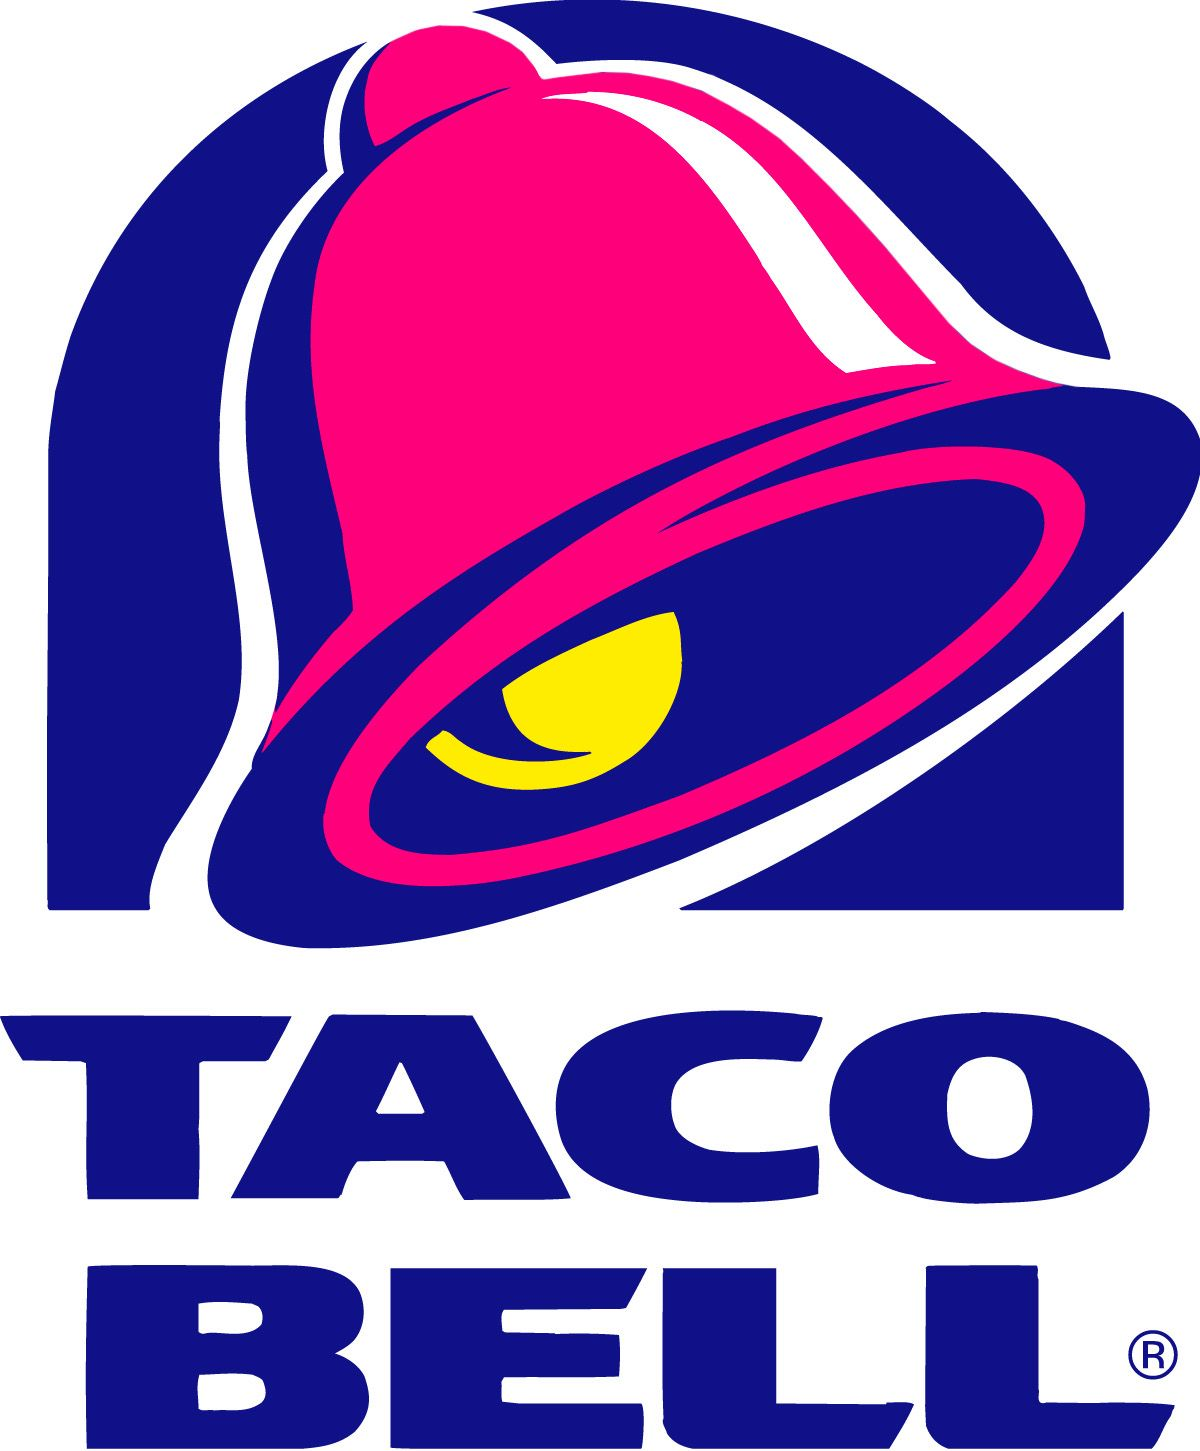 Taco Bell is one of the brands that set the standard for social media integration in their marketing strategy. They are fun and understand their consumers very well. Their twitter page https://twitter.com/TacoBell constantly retweet customers that ask questions and regularly send handwritten letters and give out free offers. Well done.